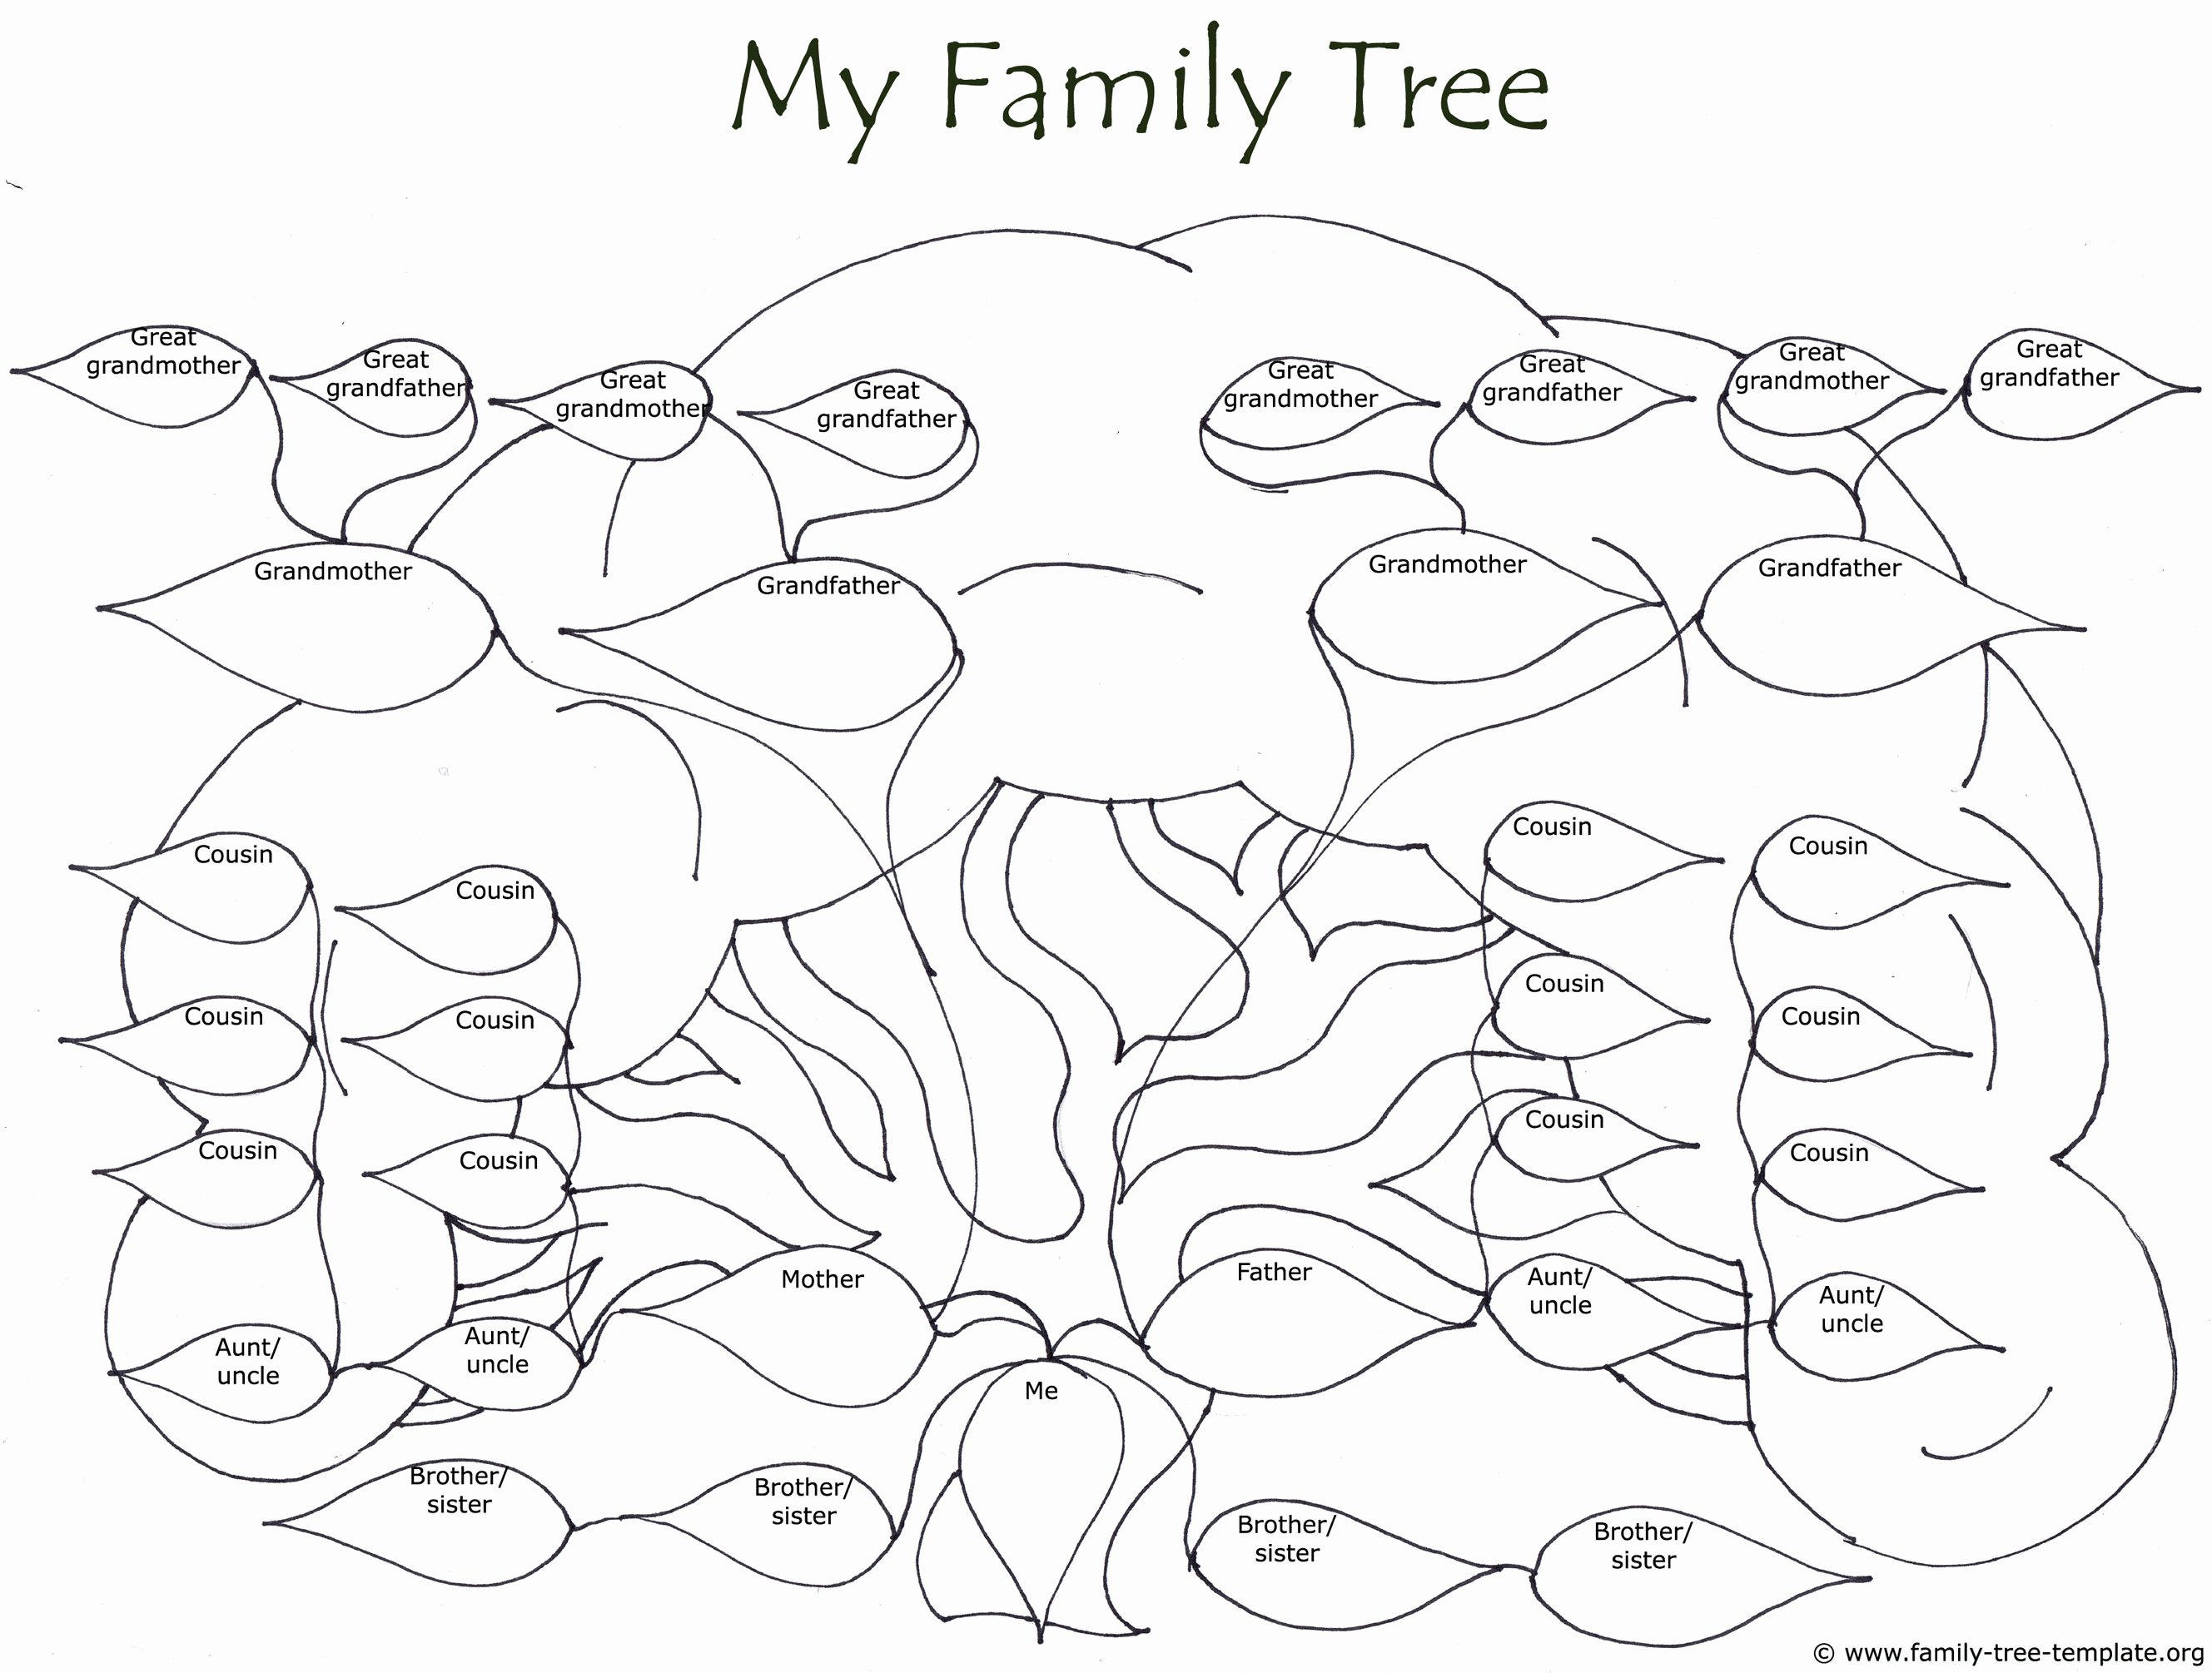 Family Tree Template with Photos Awesome Free Family Tree Drawing at Getdrawings